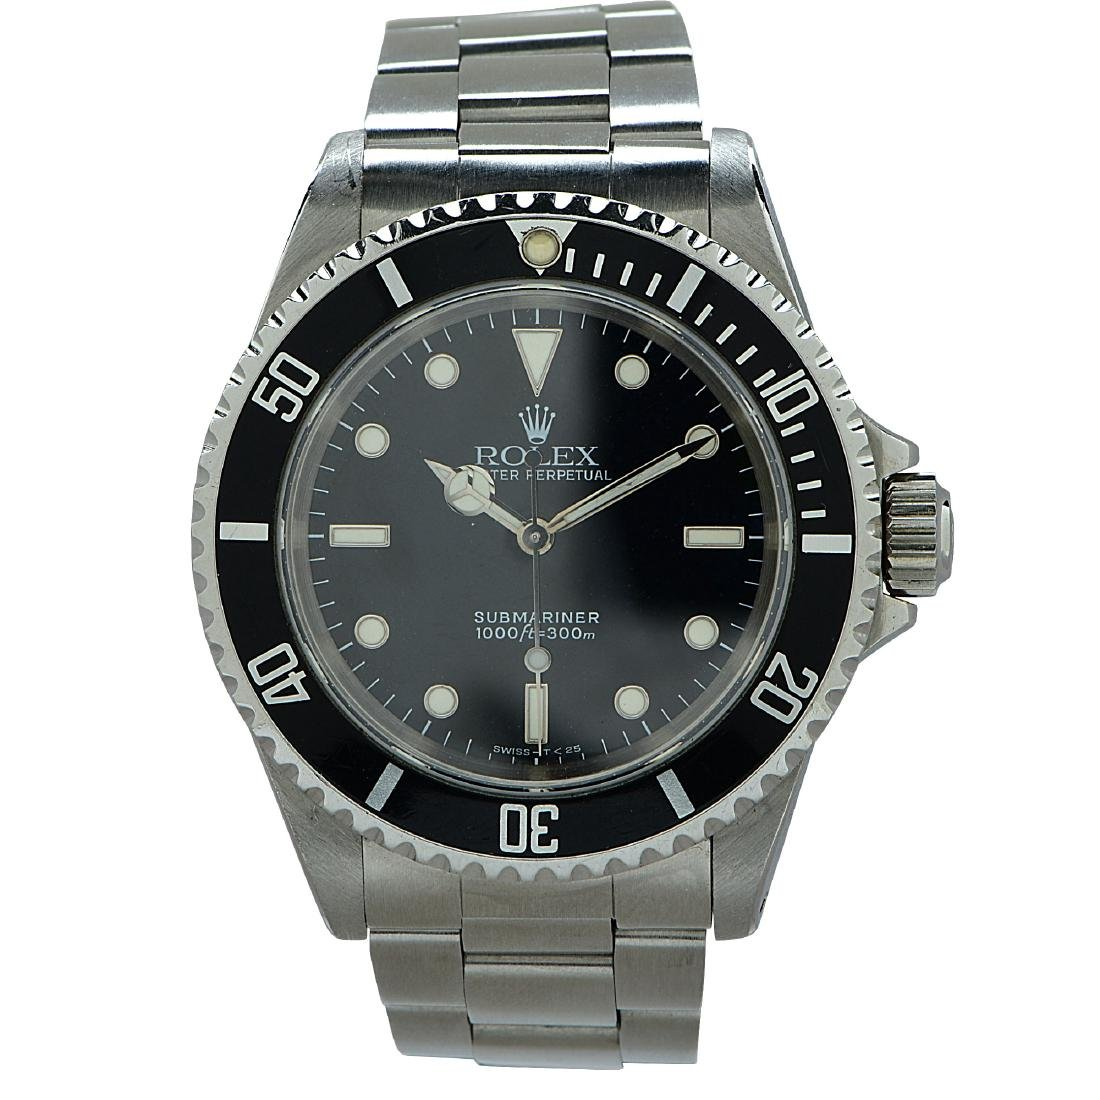 Rolex Perpetual Submariner Stainless Steel Watch